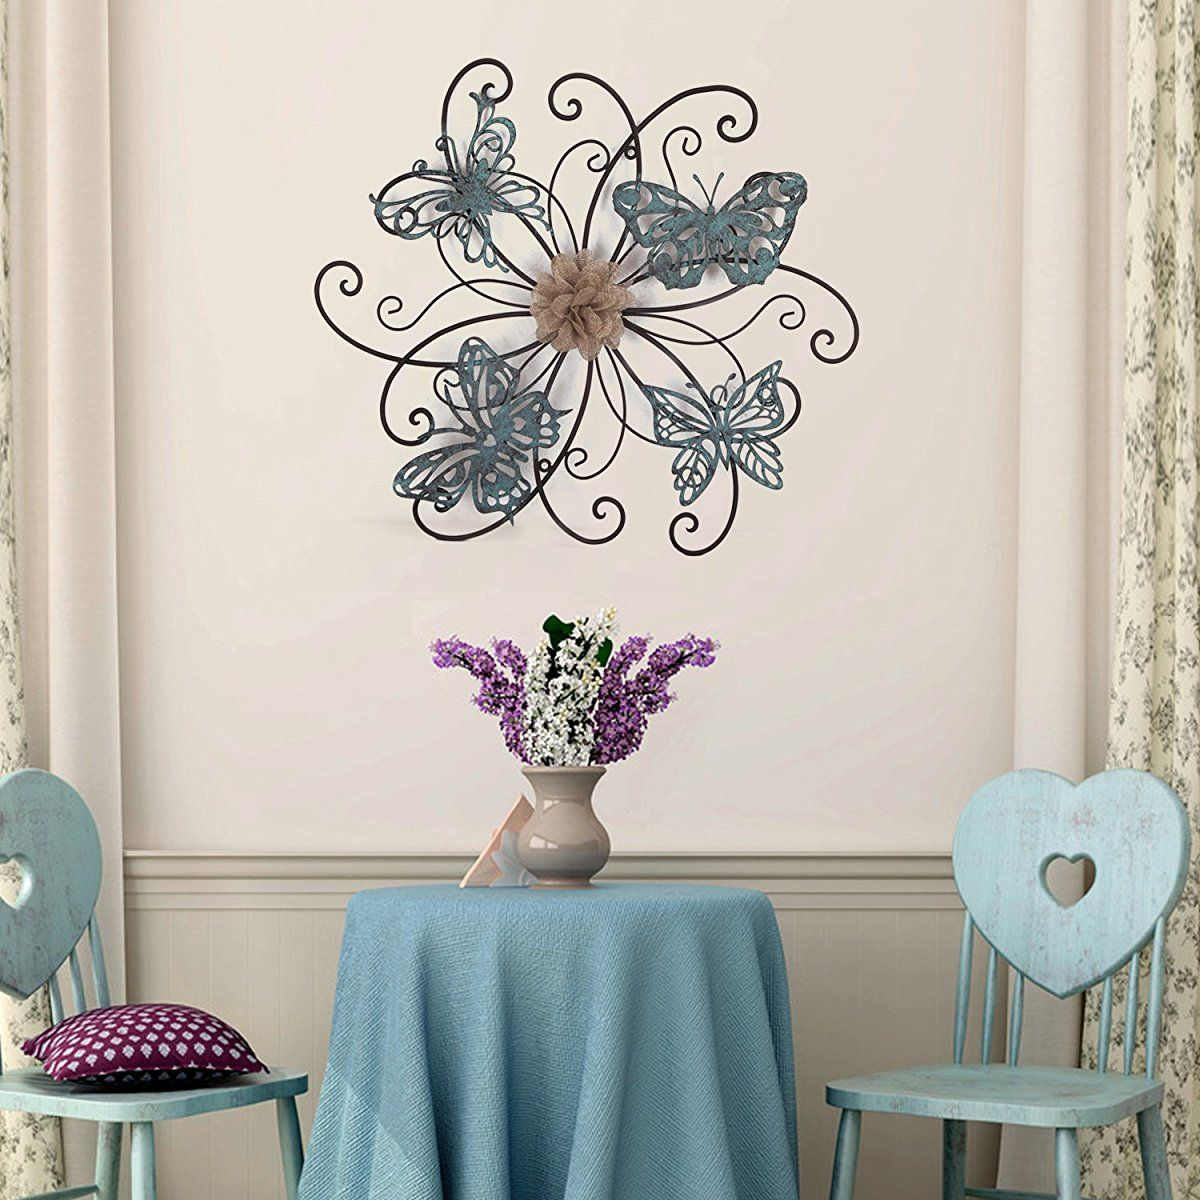 Favorite Homes Art Flower And Butterfly Urban Design Metal Wall Decor For Inside Raheem Flowers Metal Wall Decor (View 6 of 20)